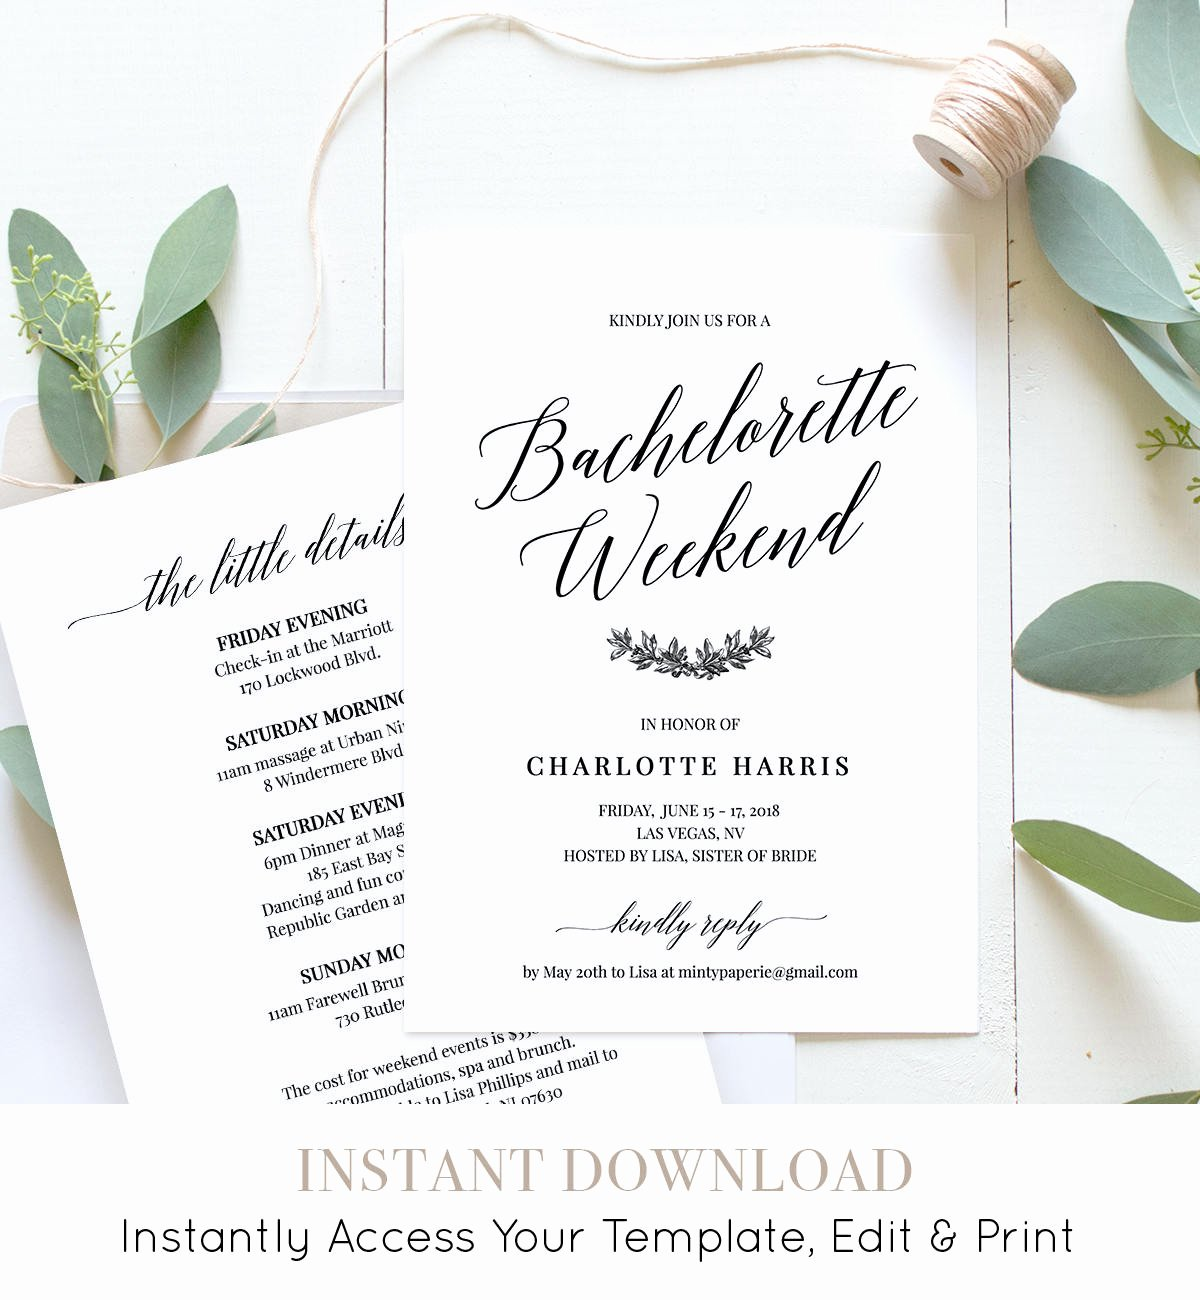 Bachelorette Party Itinerary Template Awesome Bachelorette Party Weekend Invitation Itinerary Agenda Weekend events Editable Template